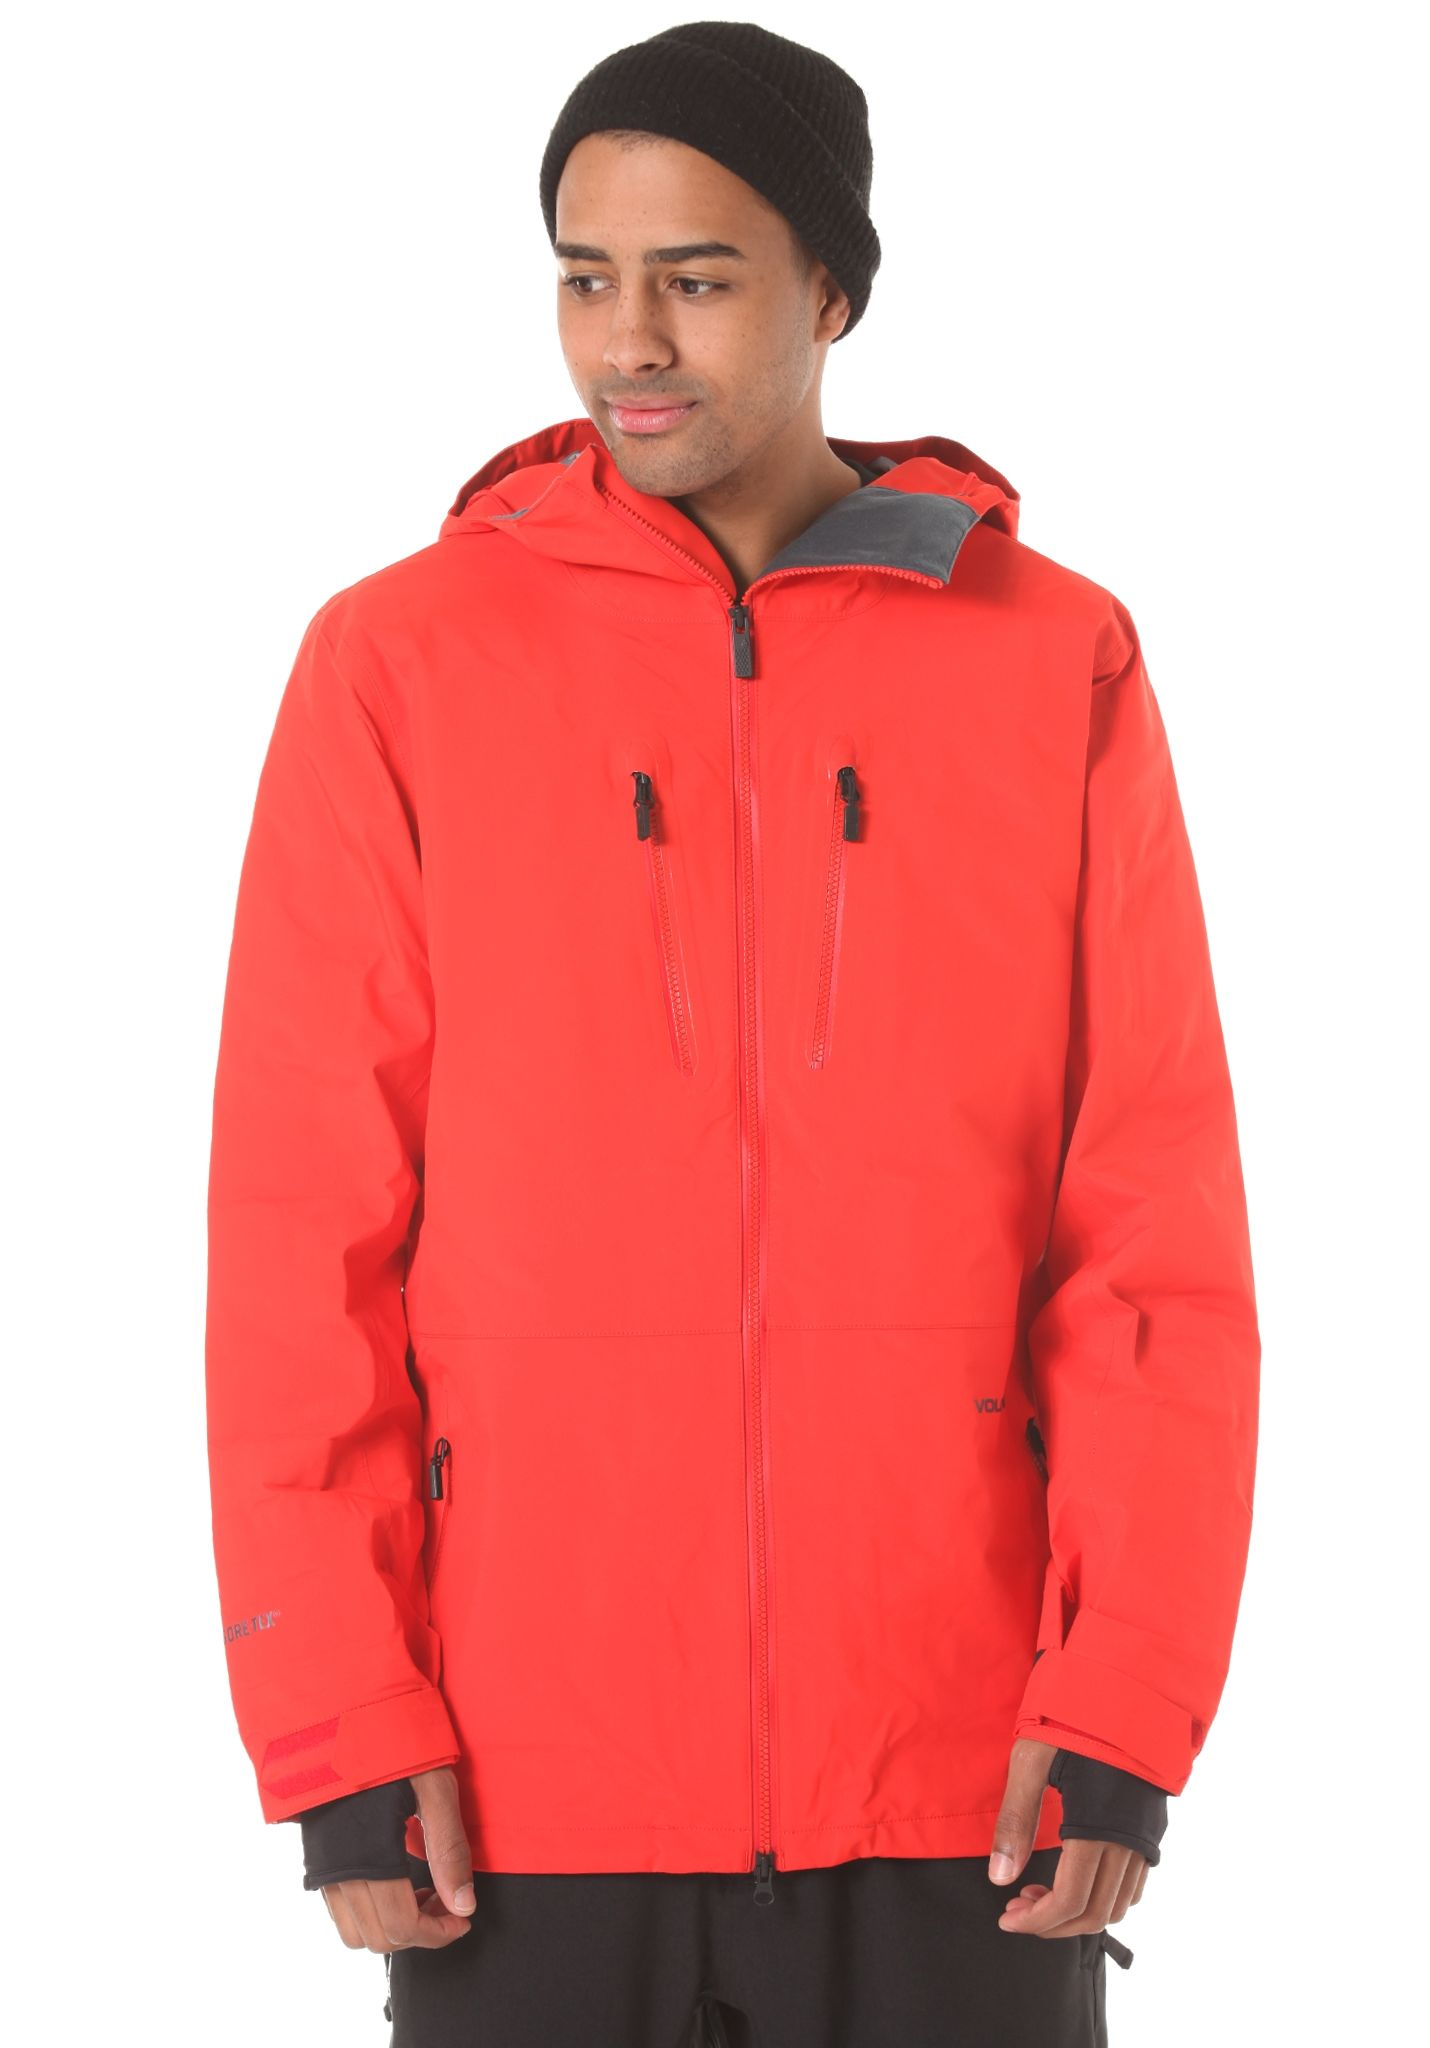 561a59e3ab Volcom Air Tds Gore-Tex - Snowboard Jacket for Men - Red - Planet Sports